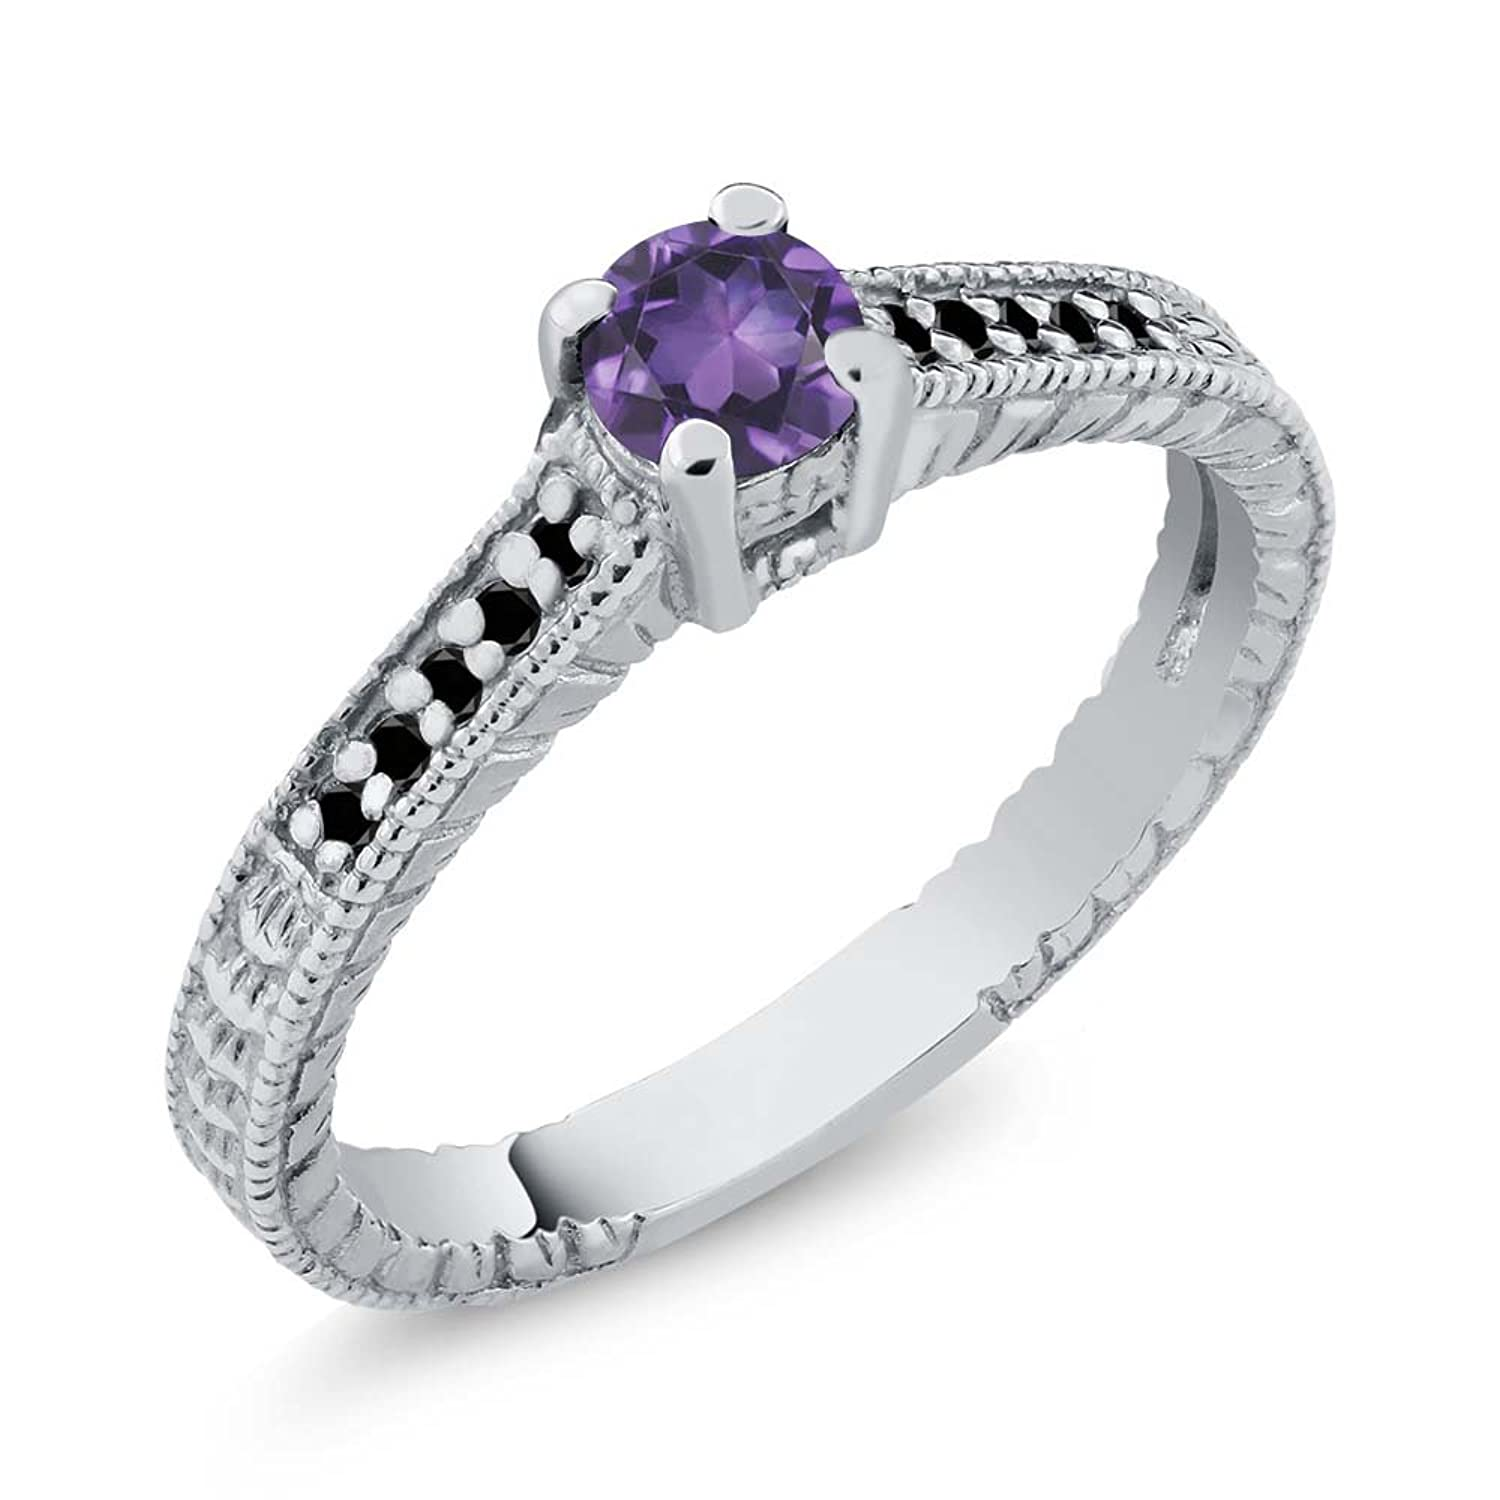 0 32 ct round purple amethyst black diamond 925 sterling silver